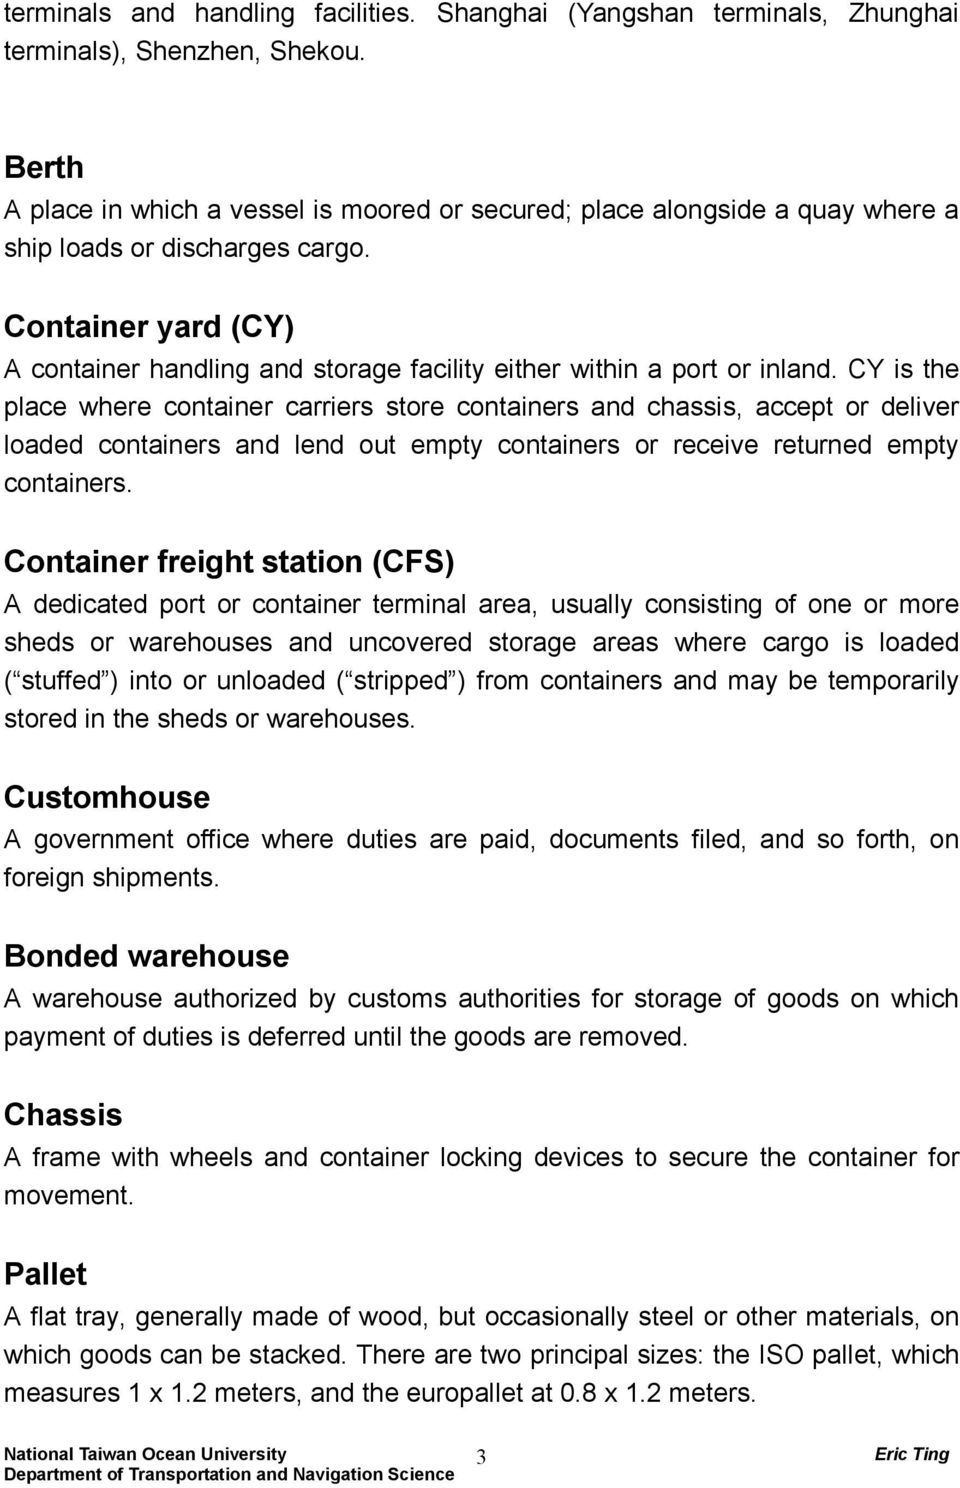 Container yard (CY) A container handling and storage facility either within a port or inland.